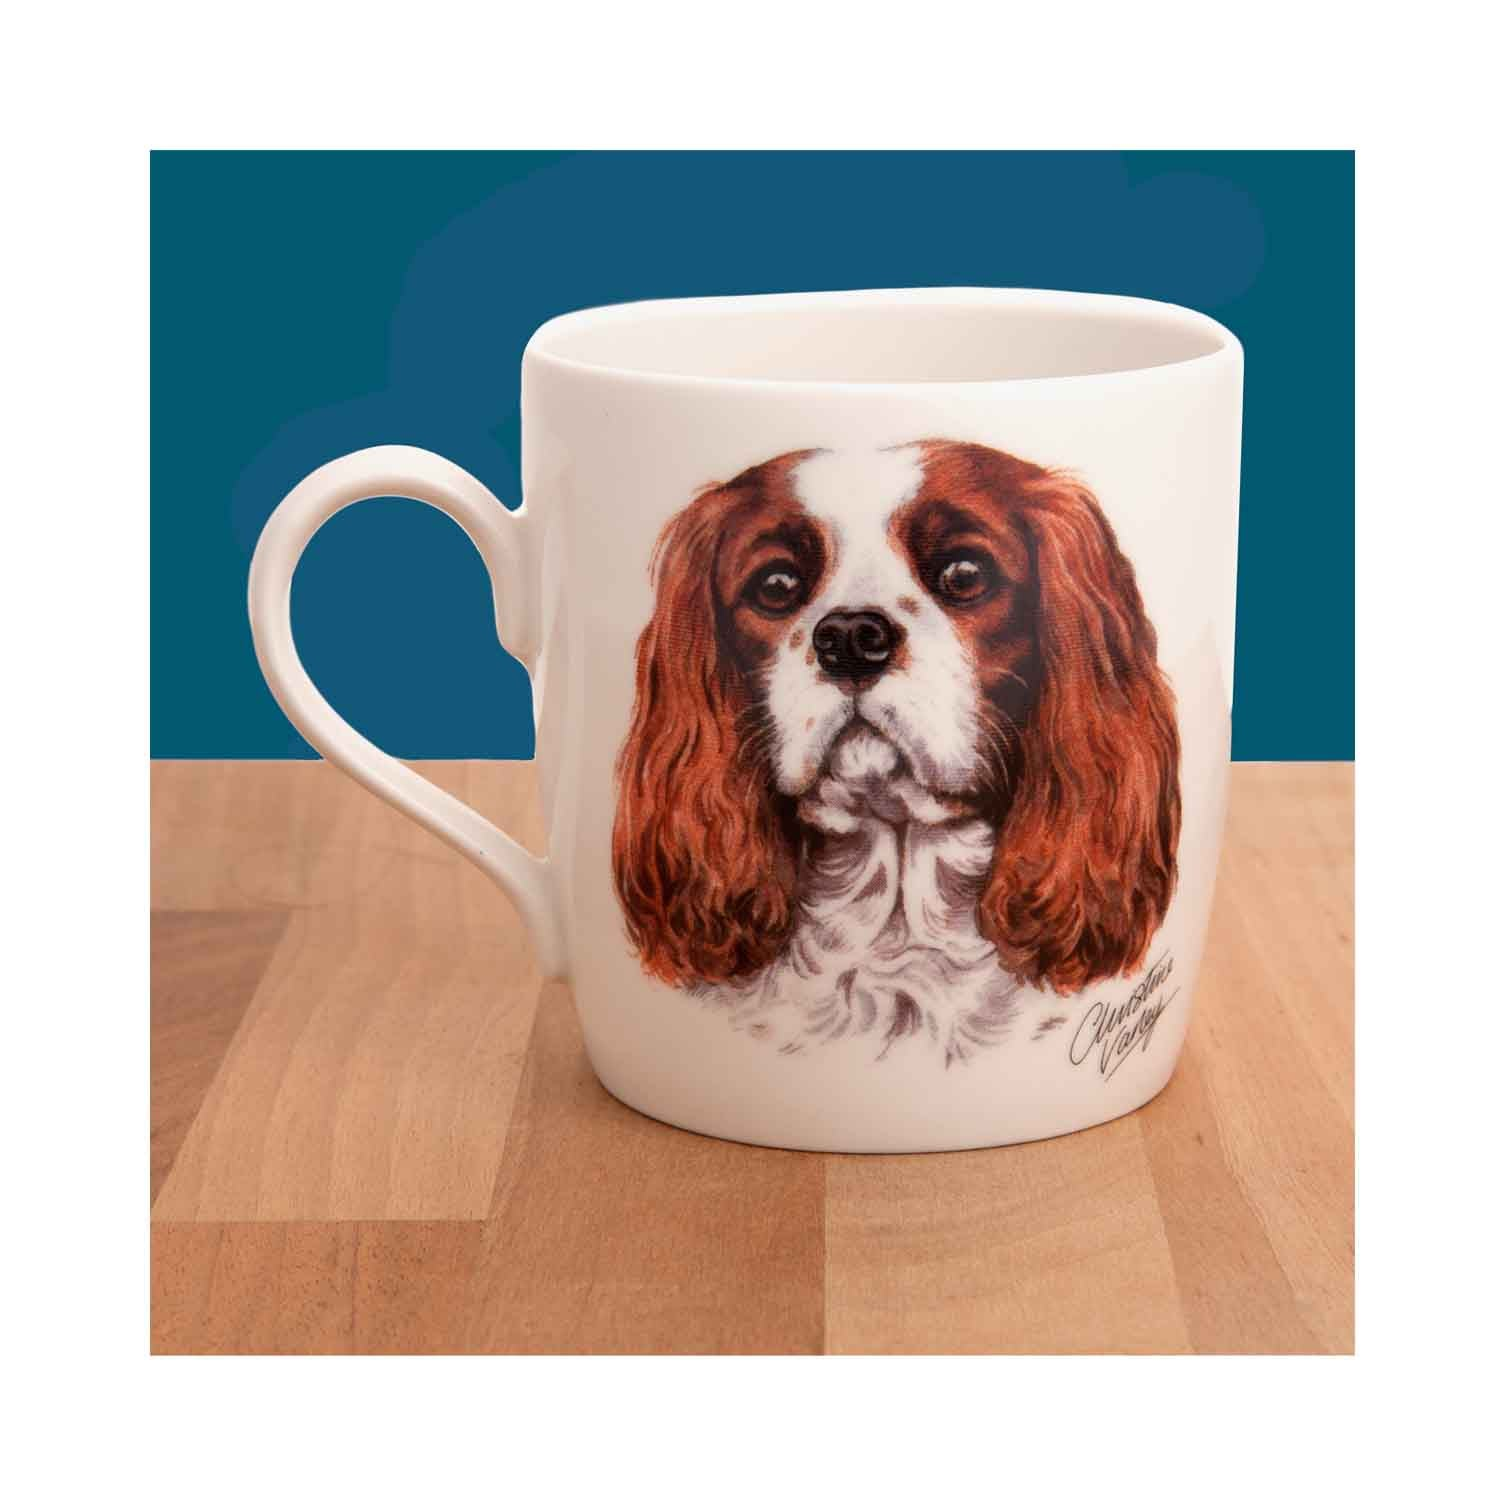 Dog Lover Gifts available at Dog Krazy Gifts - Cavalier King Charles Waggy Dogz Mug,